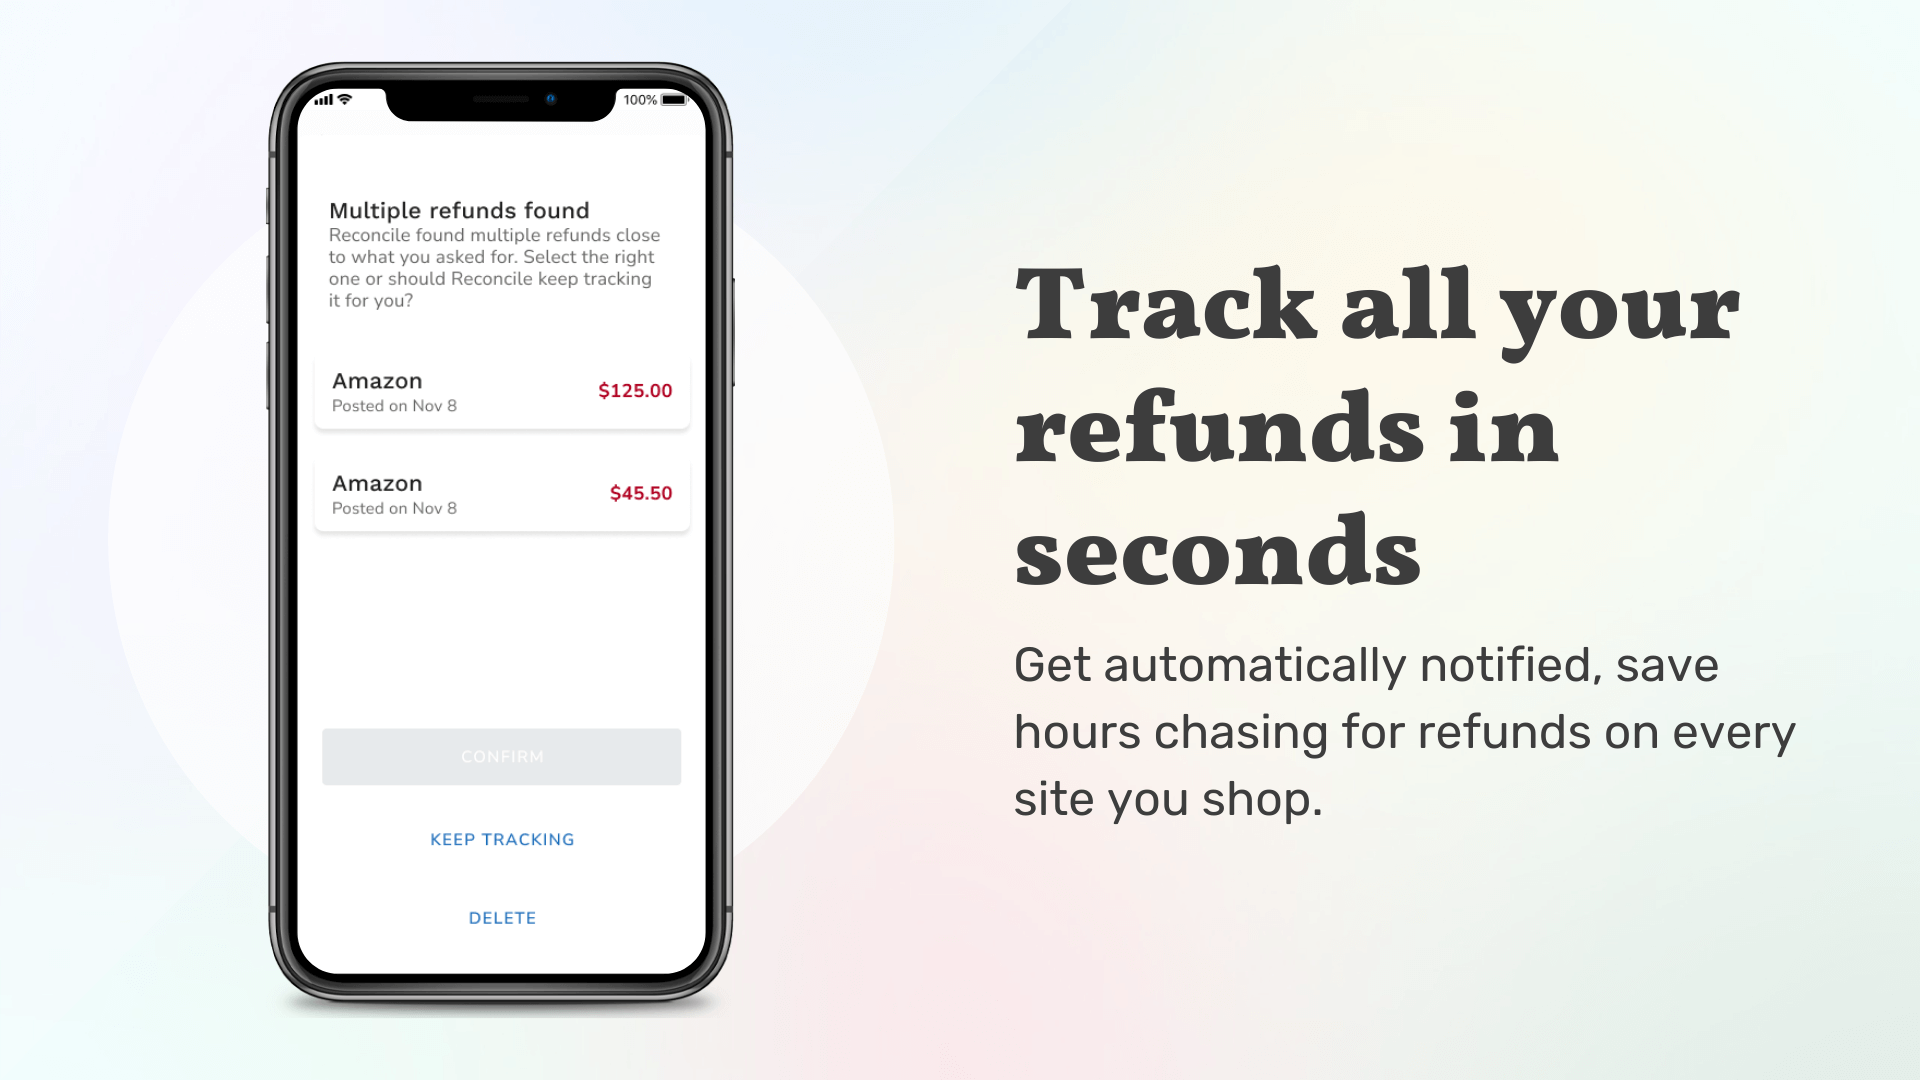 How to get your refund on amazon and track it on Reconcile?